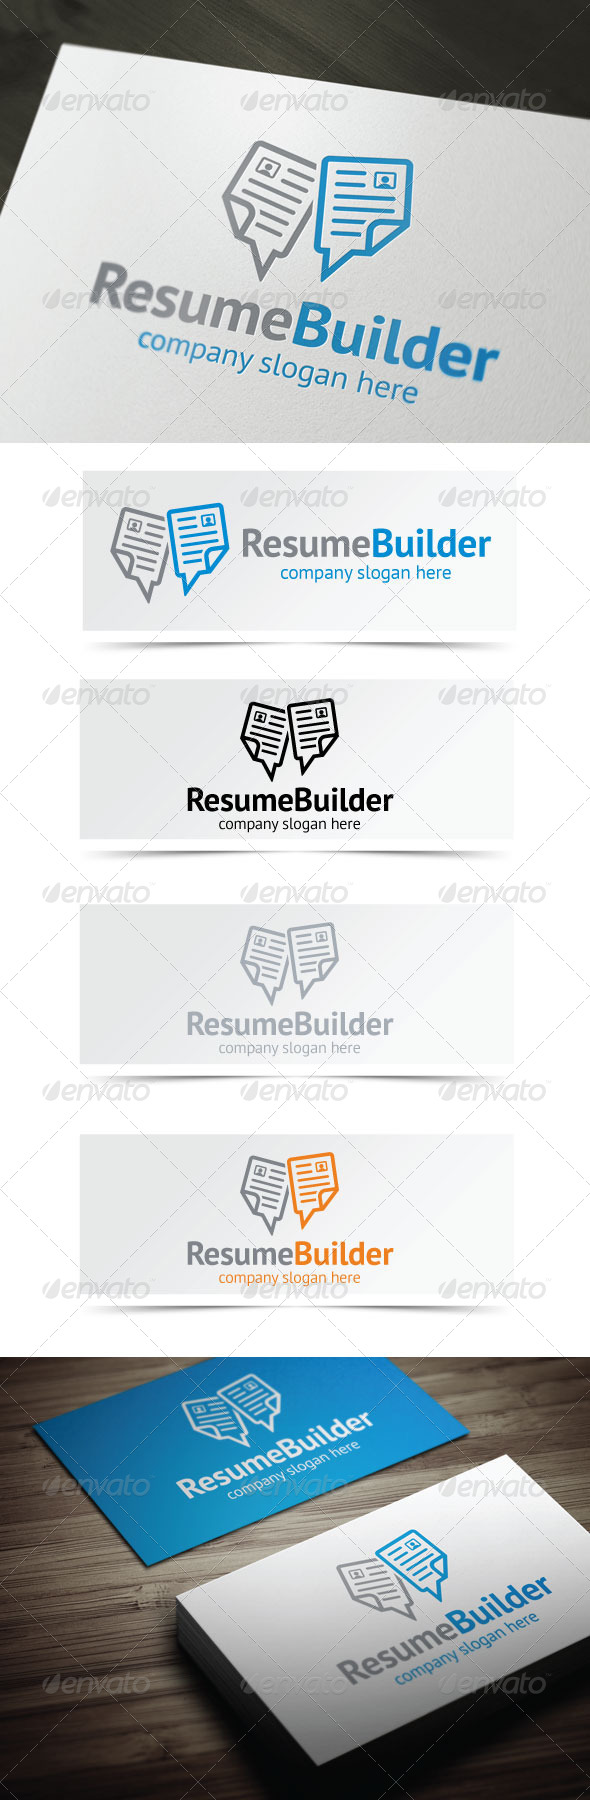 Resume Builder - Objects Logo Templates